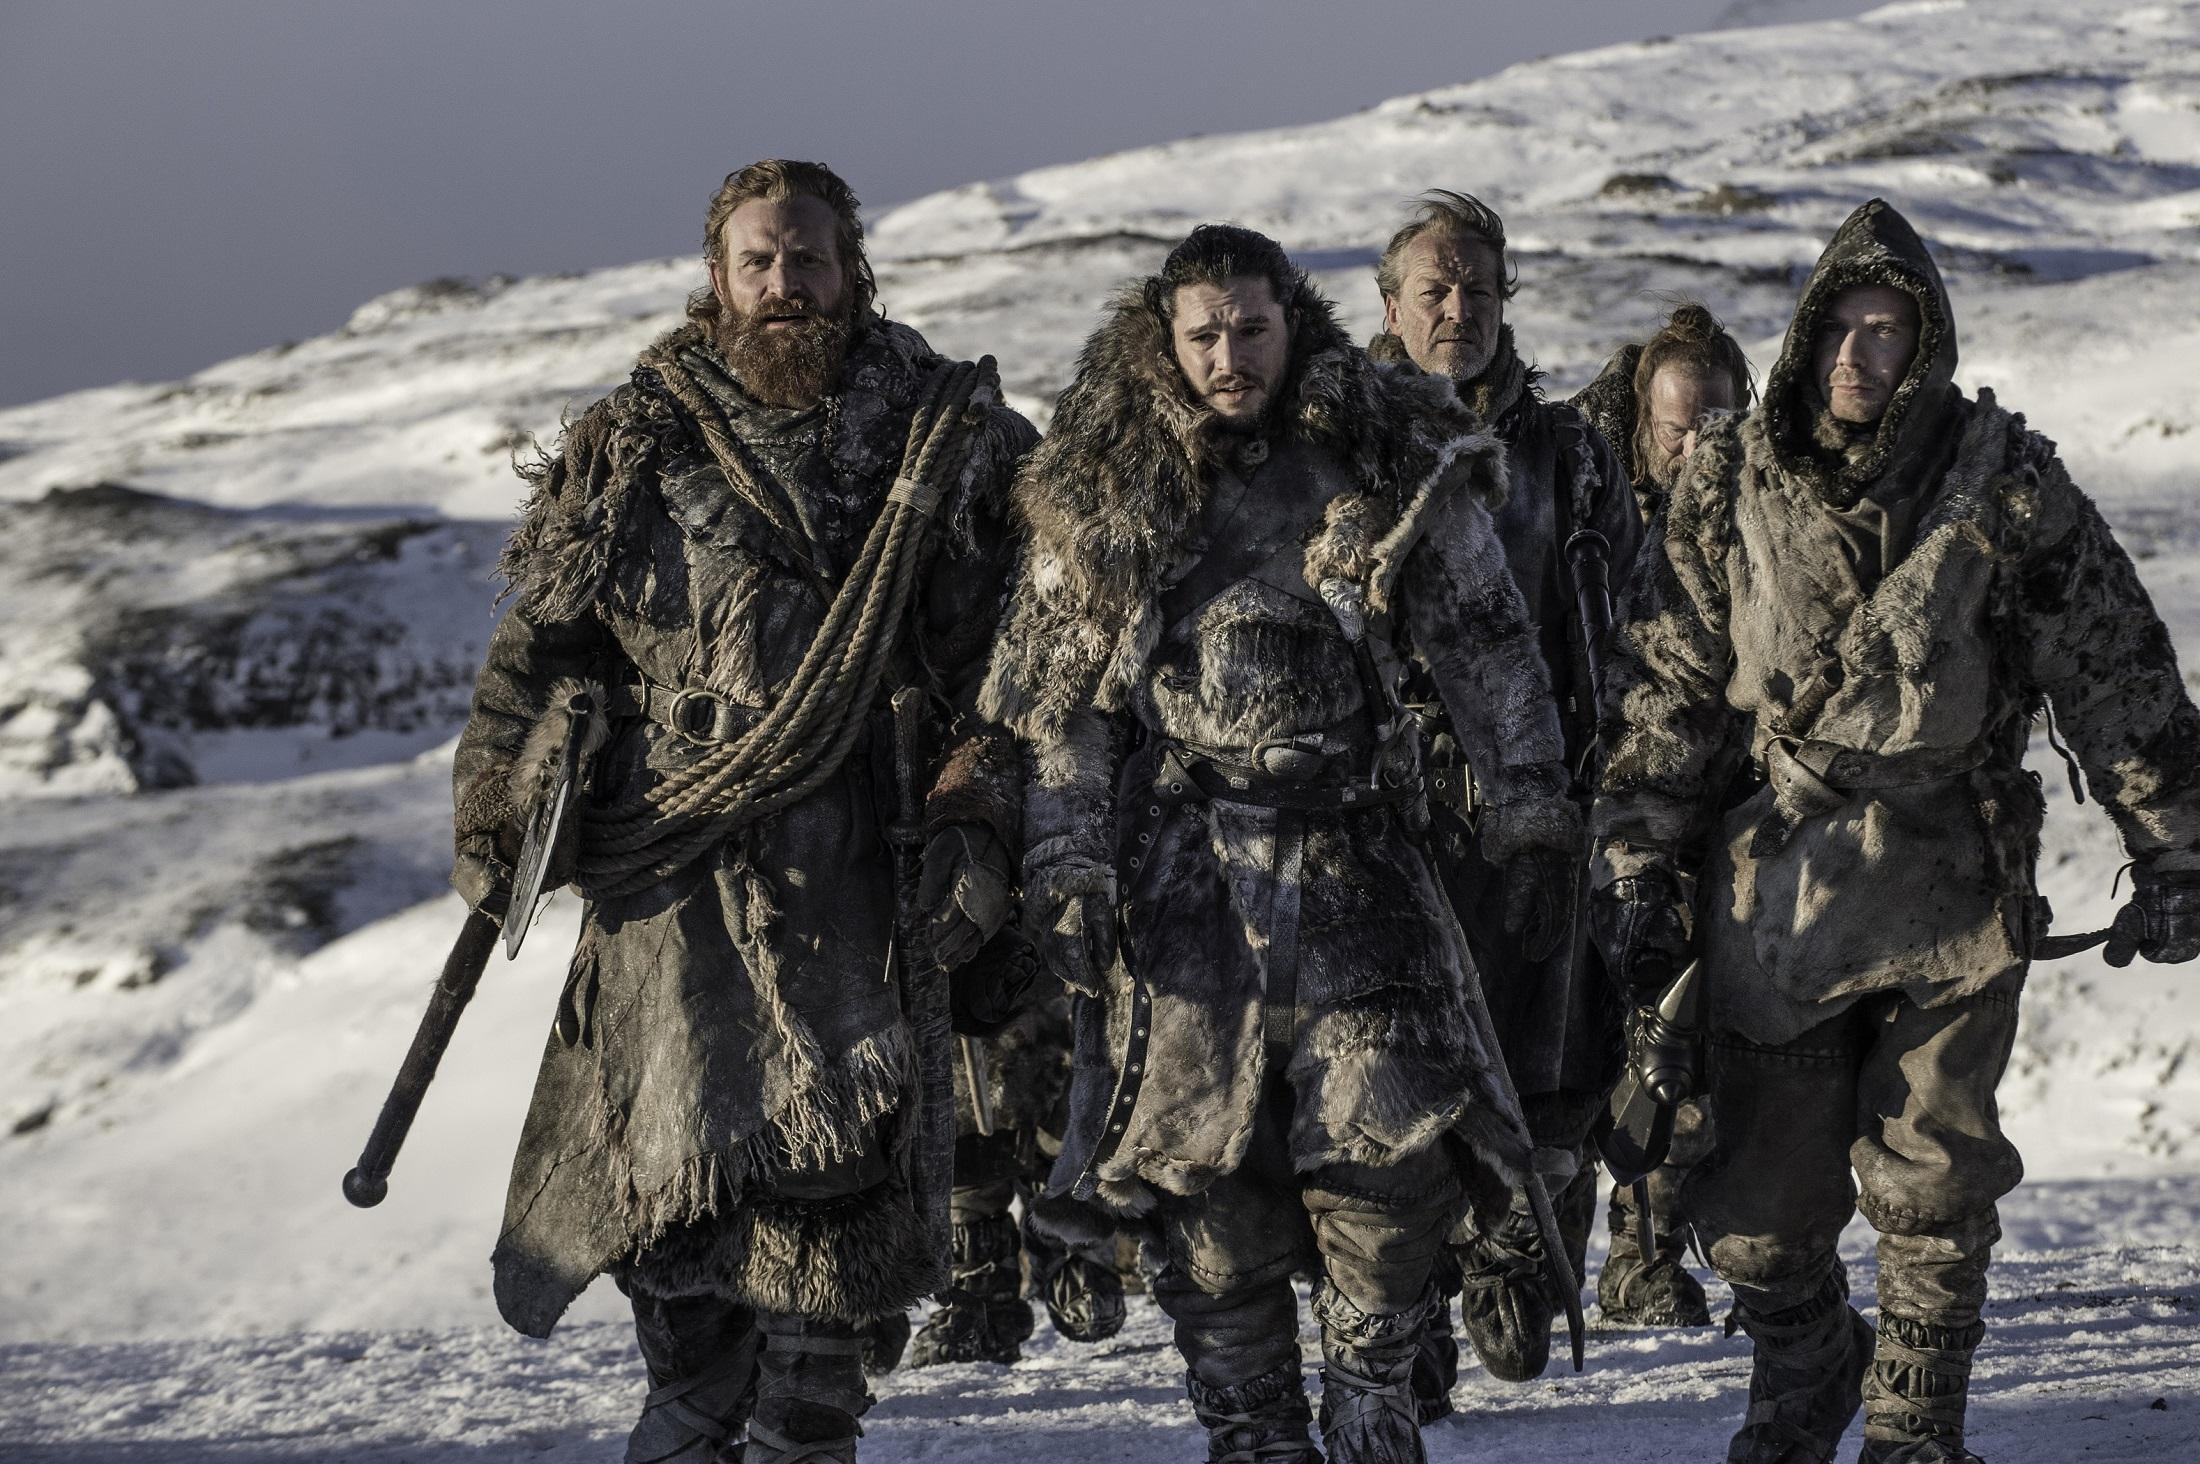 game of thrones s07e06 1080p download